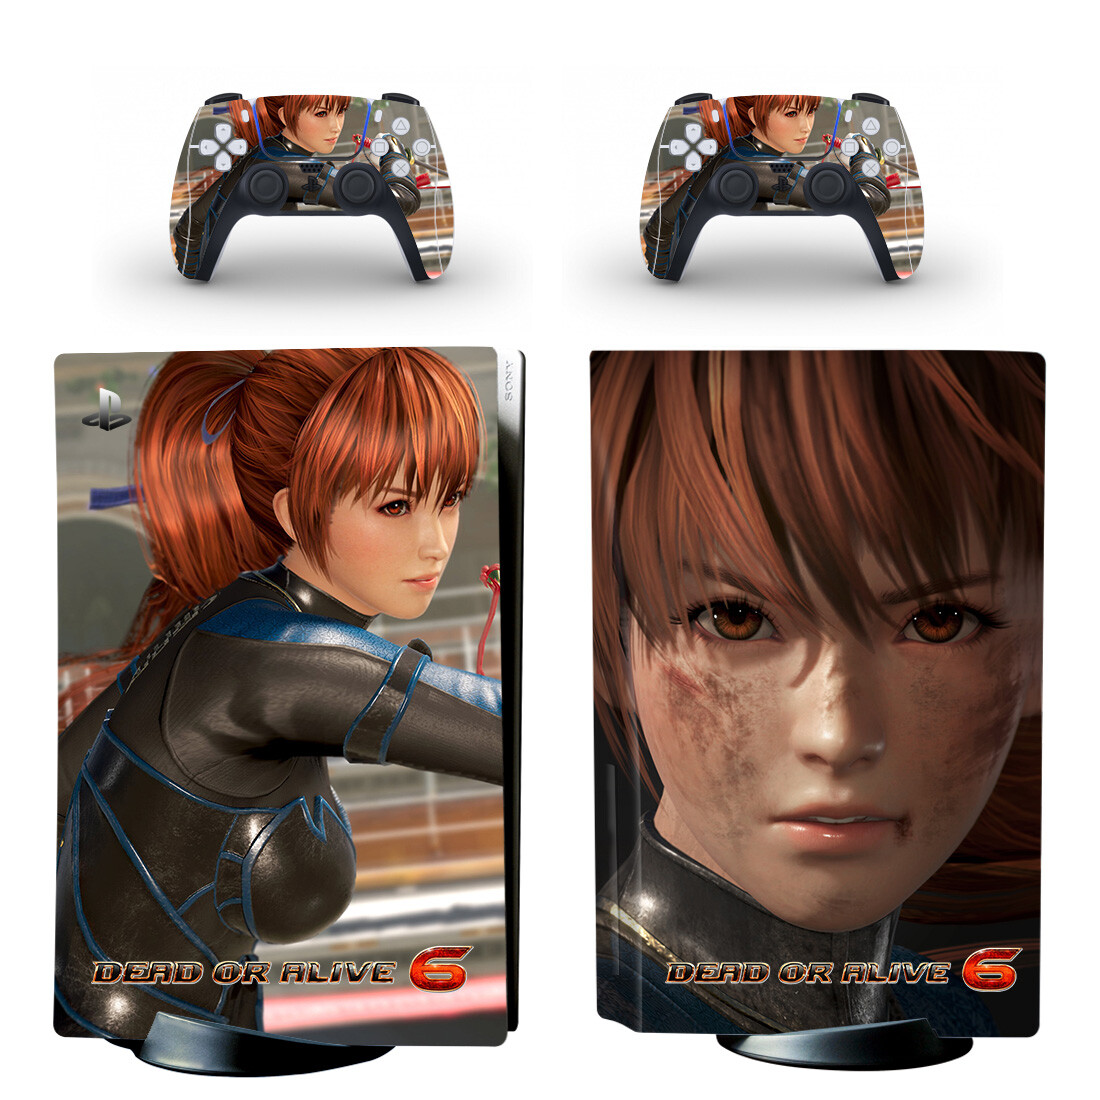 Dead Or Alive 6 Skin Sticker For PlayStation 5 And Controllers